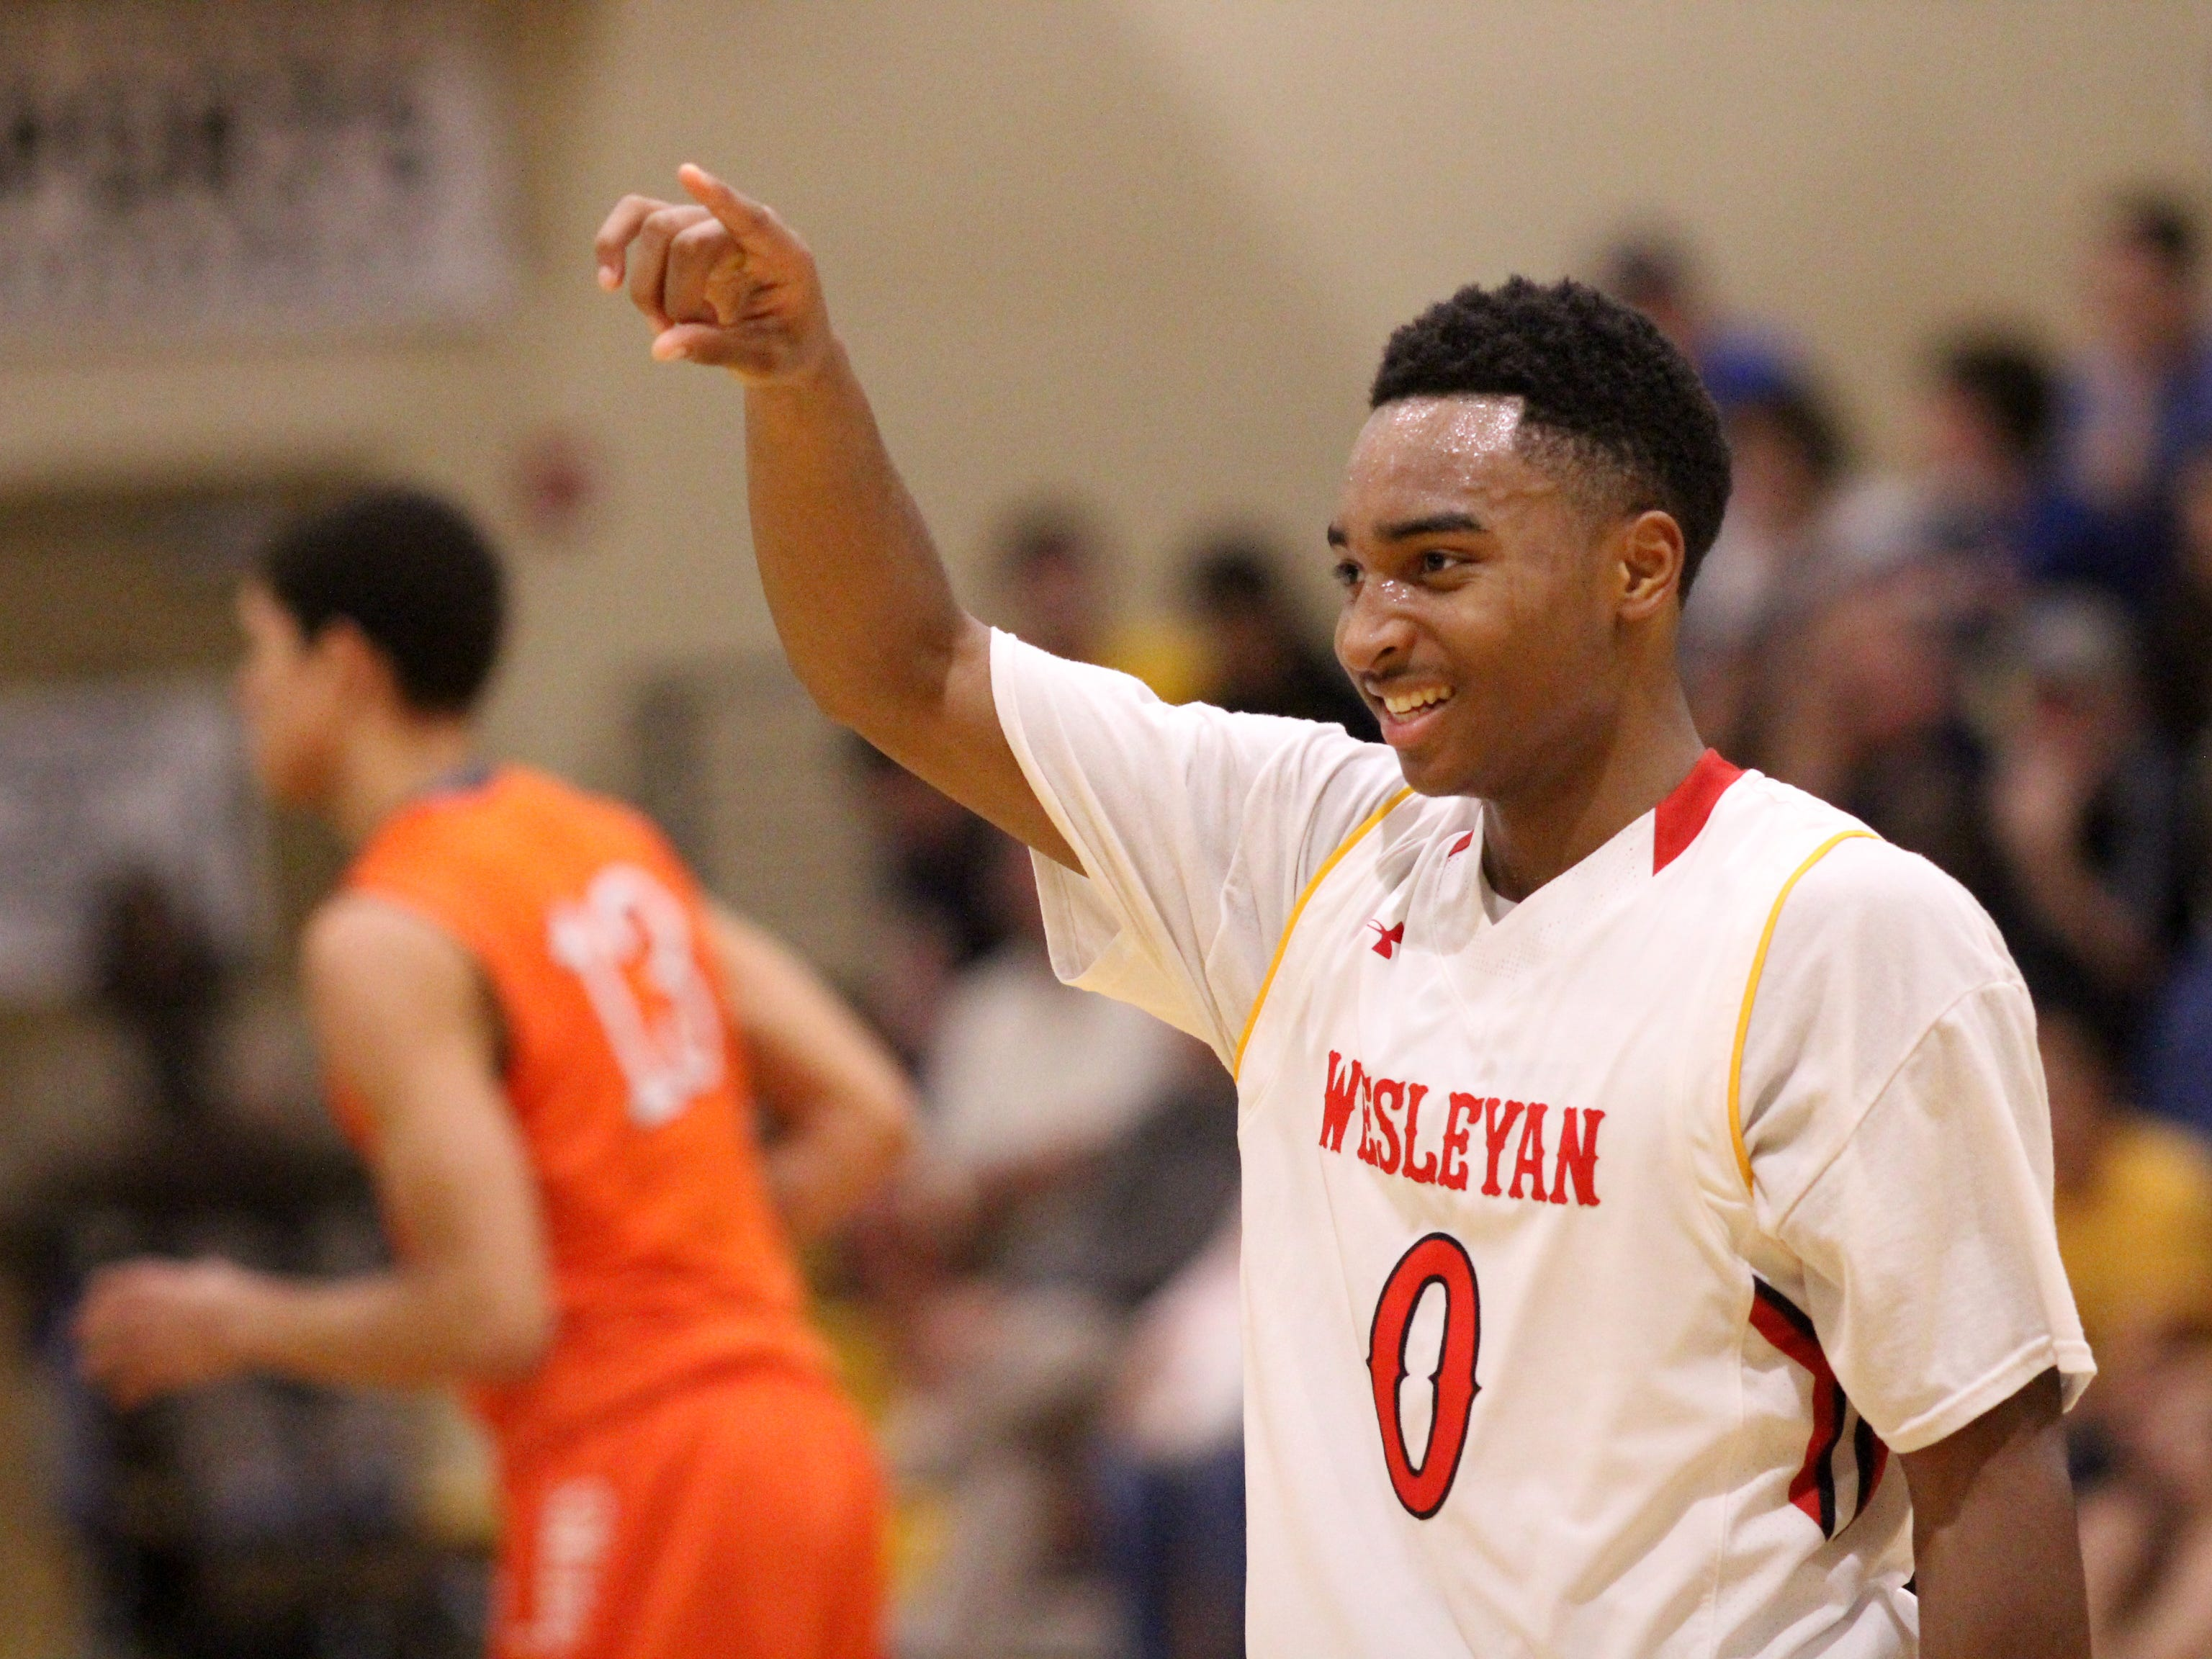 Wesley Christian Academy junior Brandon Childress smiles and points to the crowd after shooting a 3-pointer during a game in the 2014 City of Palms Classic in Fort Myers, Florida.